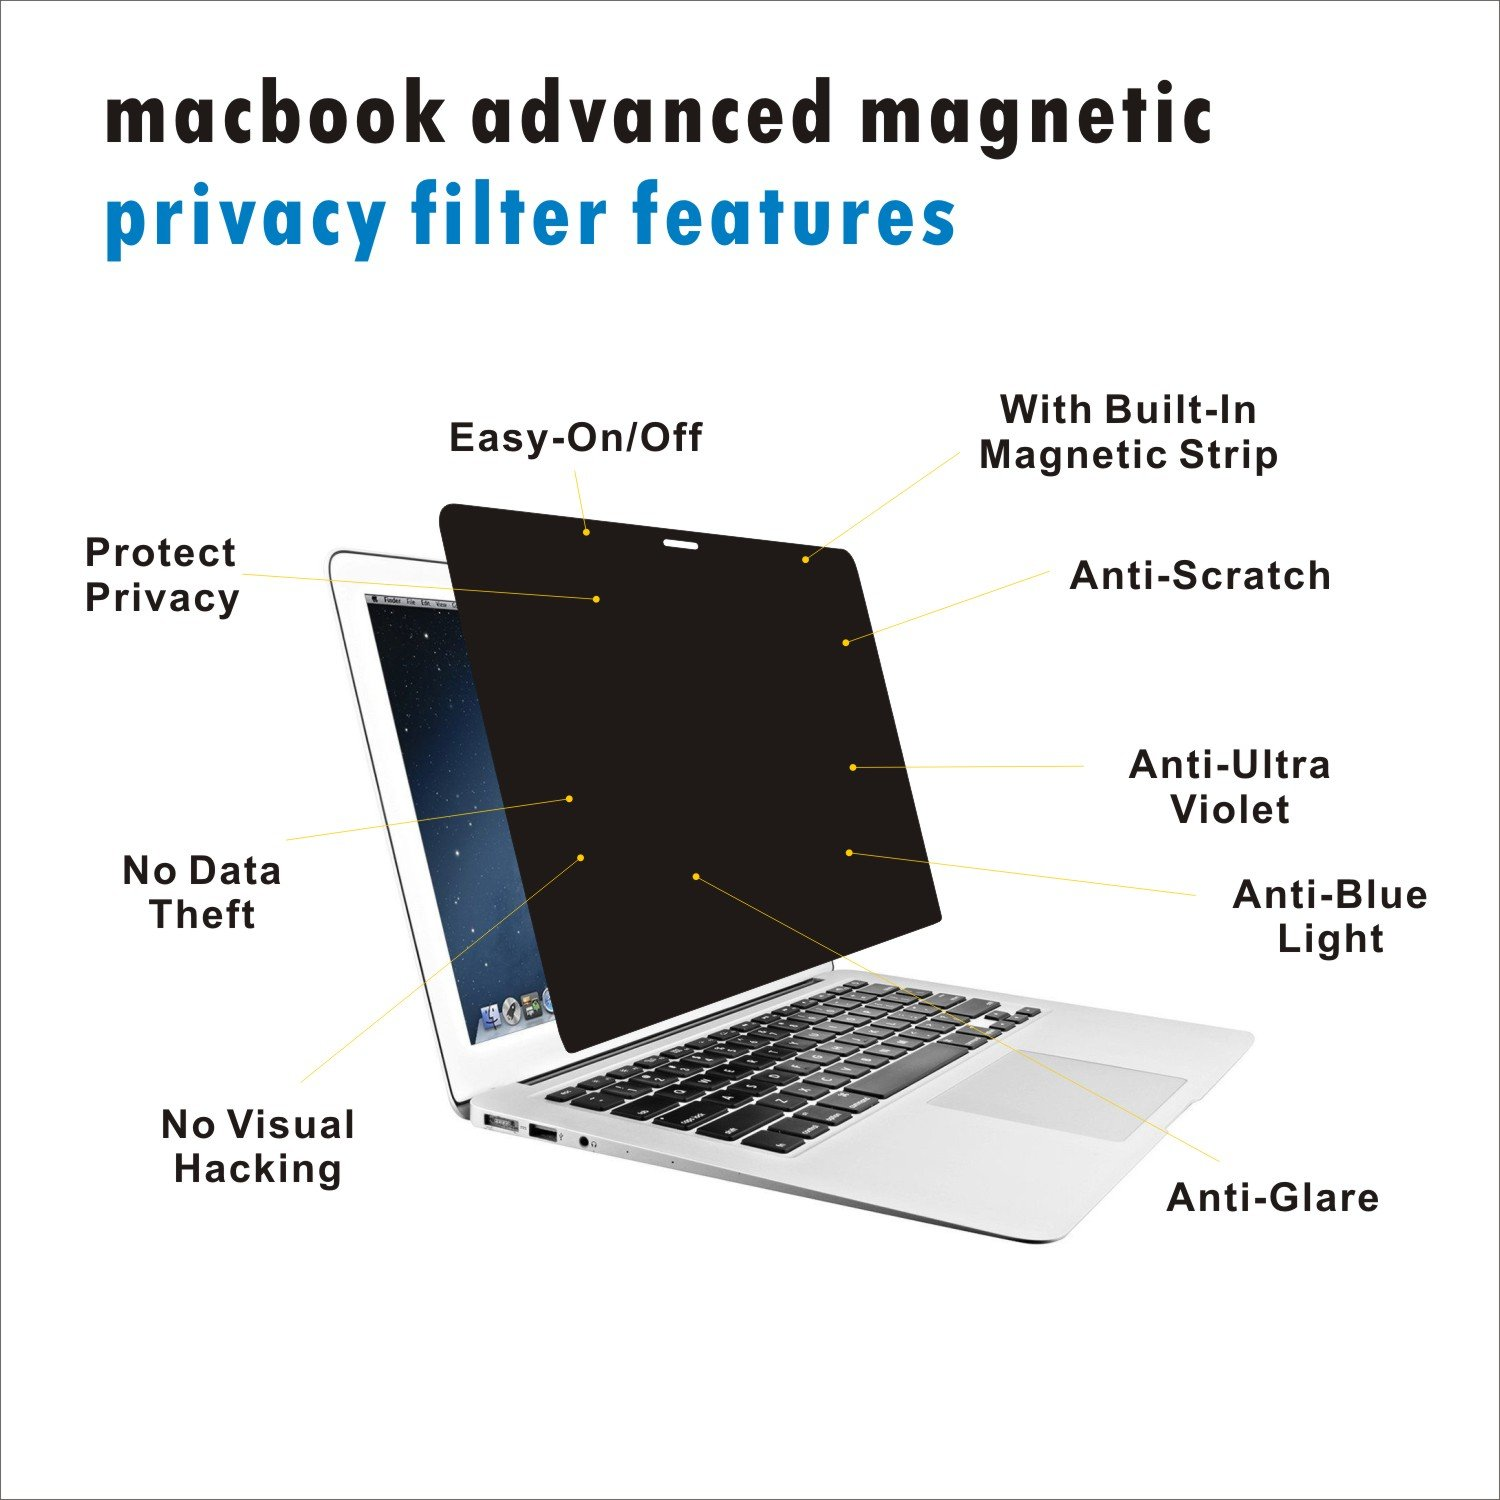 Accgonon Laptop Magnetic Privacy Screen Protectors Filter,Compatible 13-inch MacBook Pro (2016-current Version,Model:A1706A1708A1989),Anti-Glare,Anti-Spy,Scratch and UV Protection,Easy On/Off by ACCGONON (Image #4)